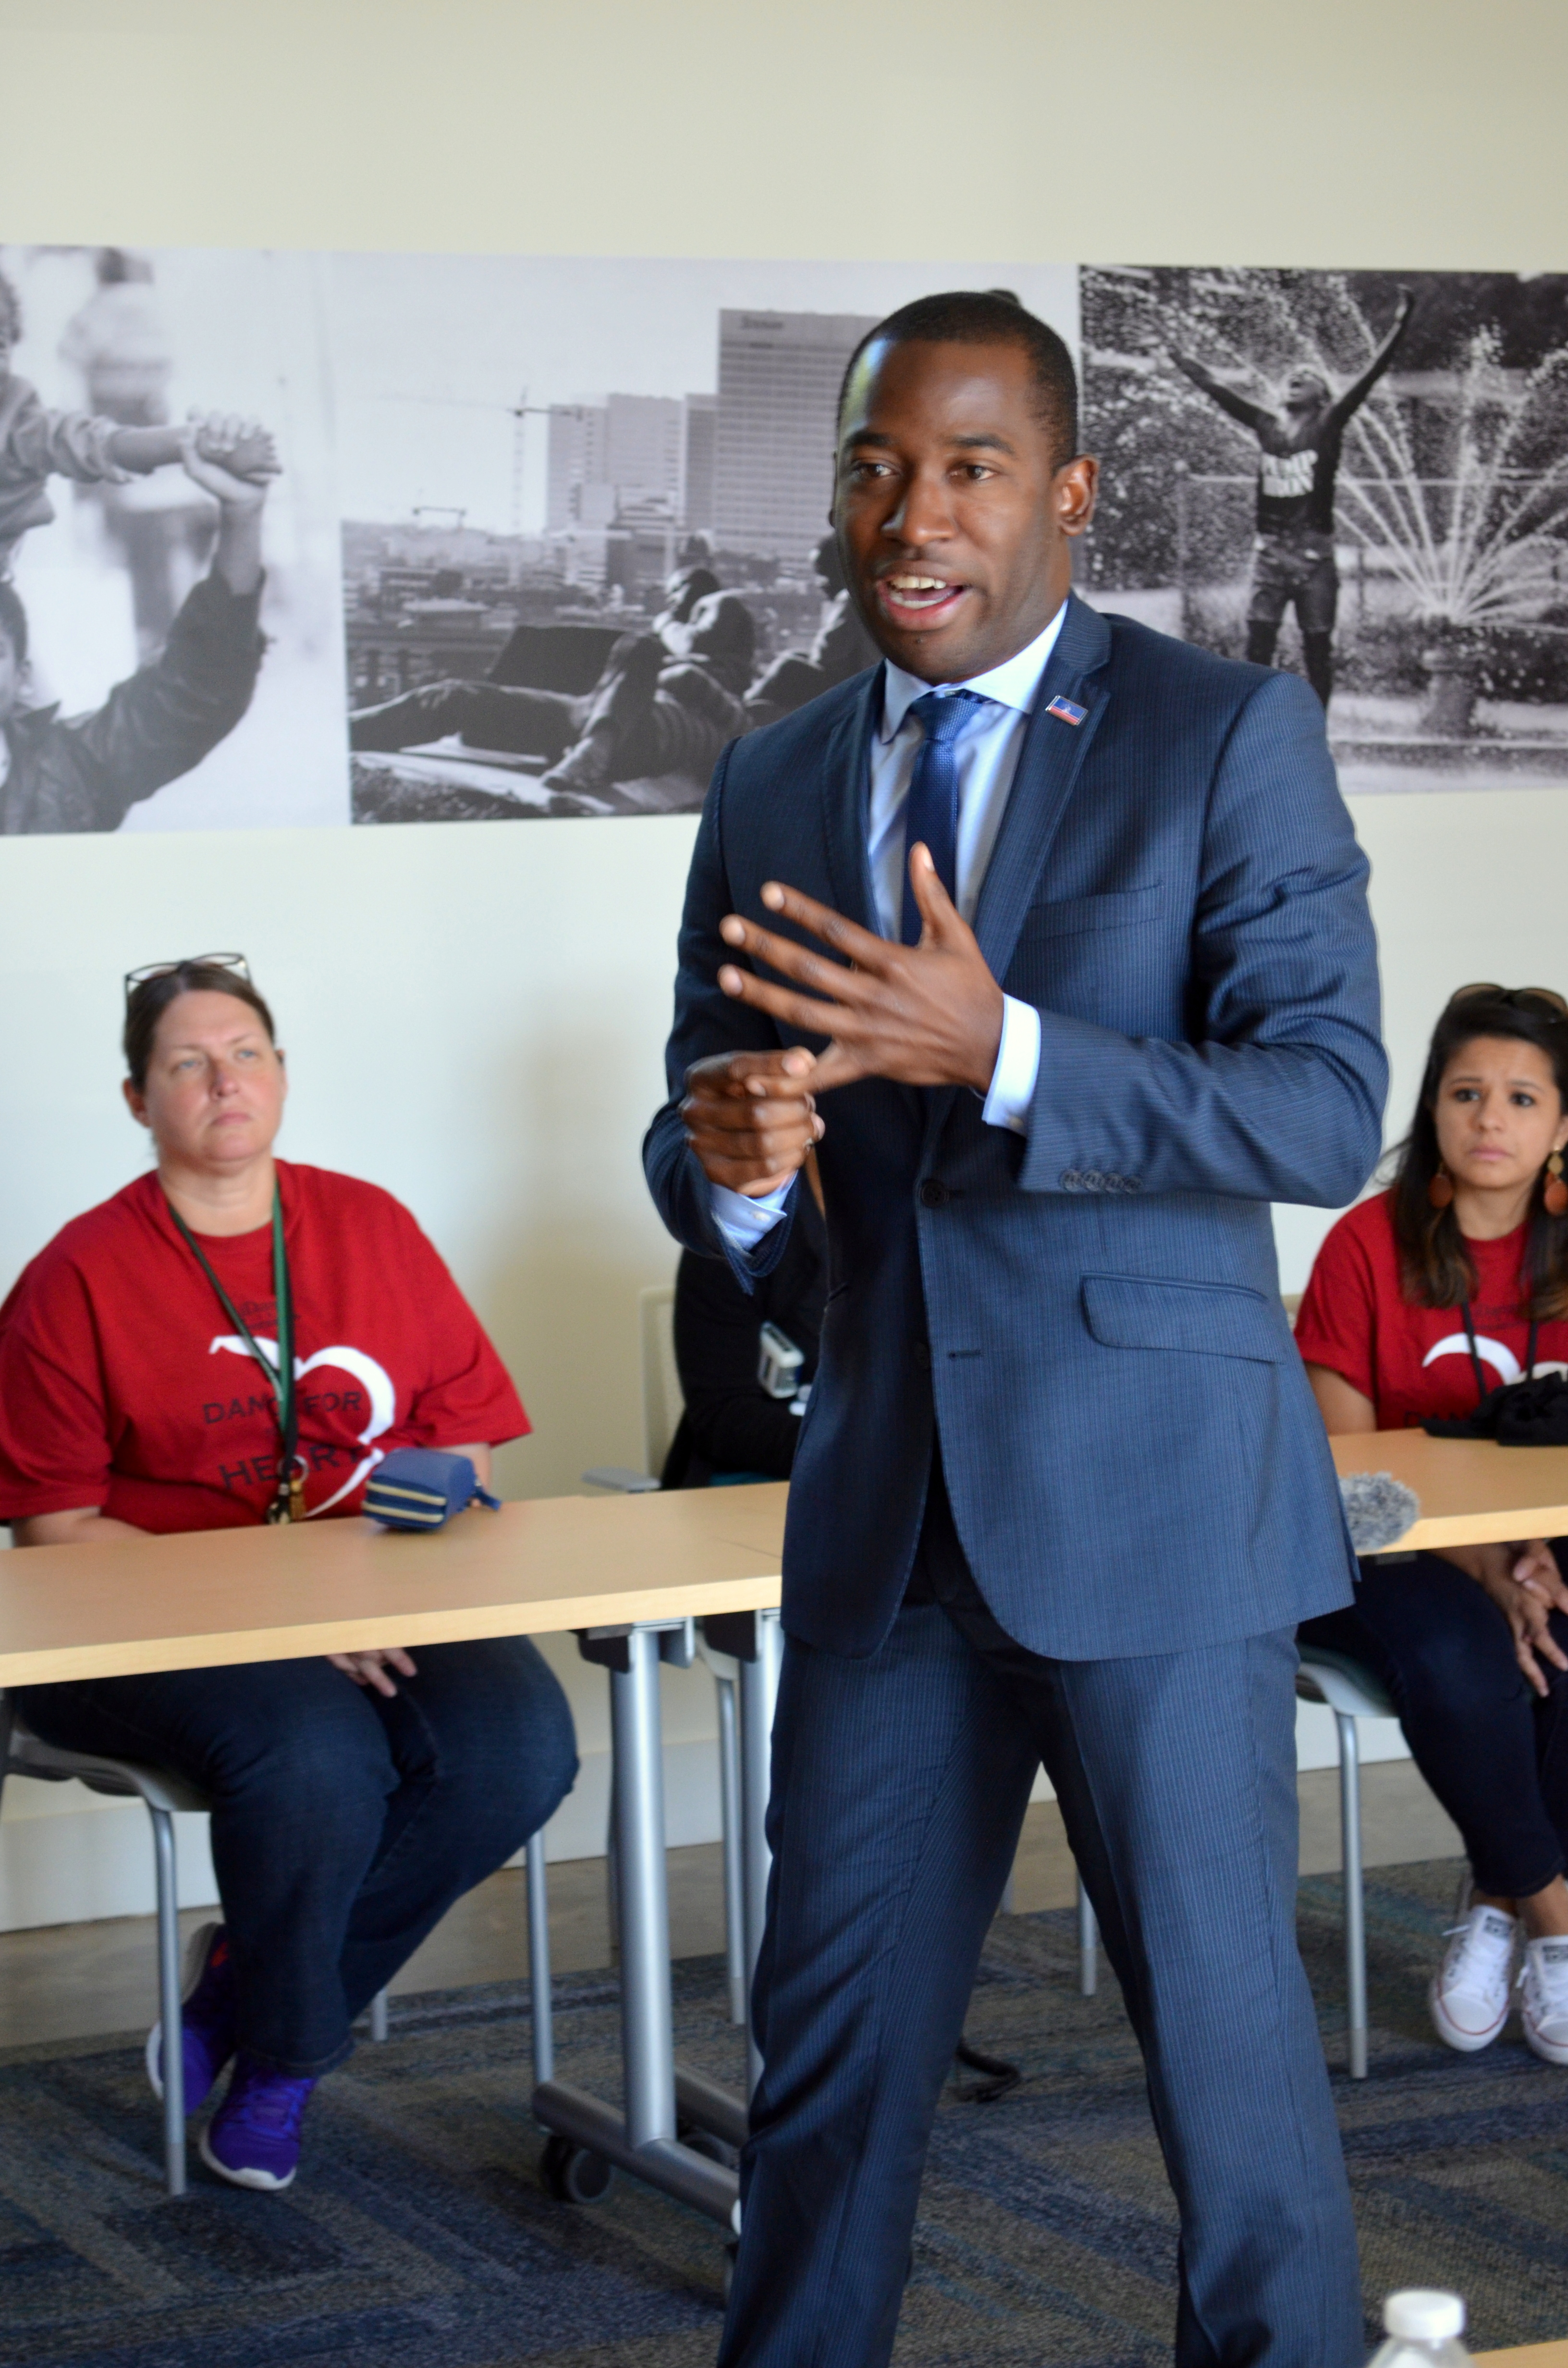 Richmond Mayor Levar Stoney addressed the group.